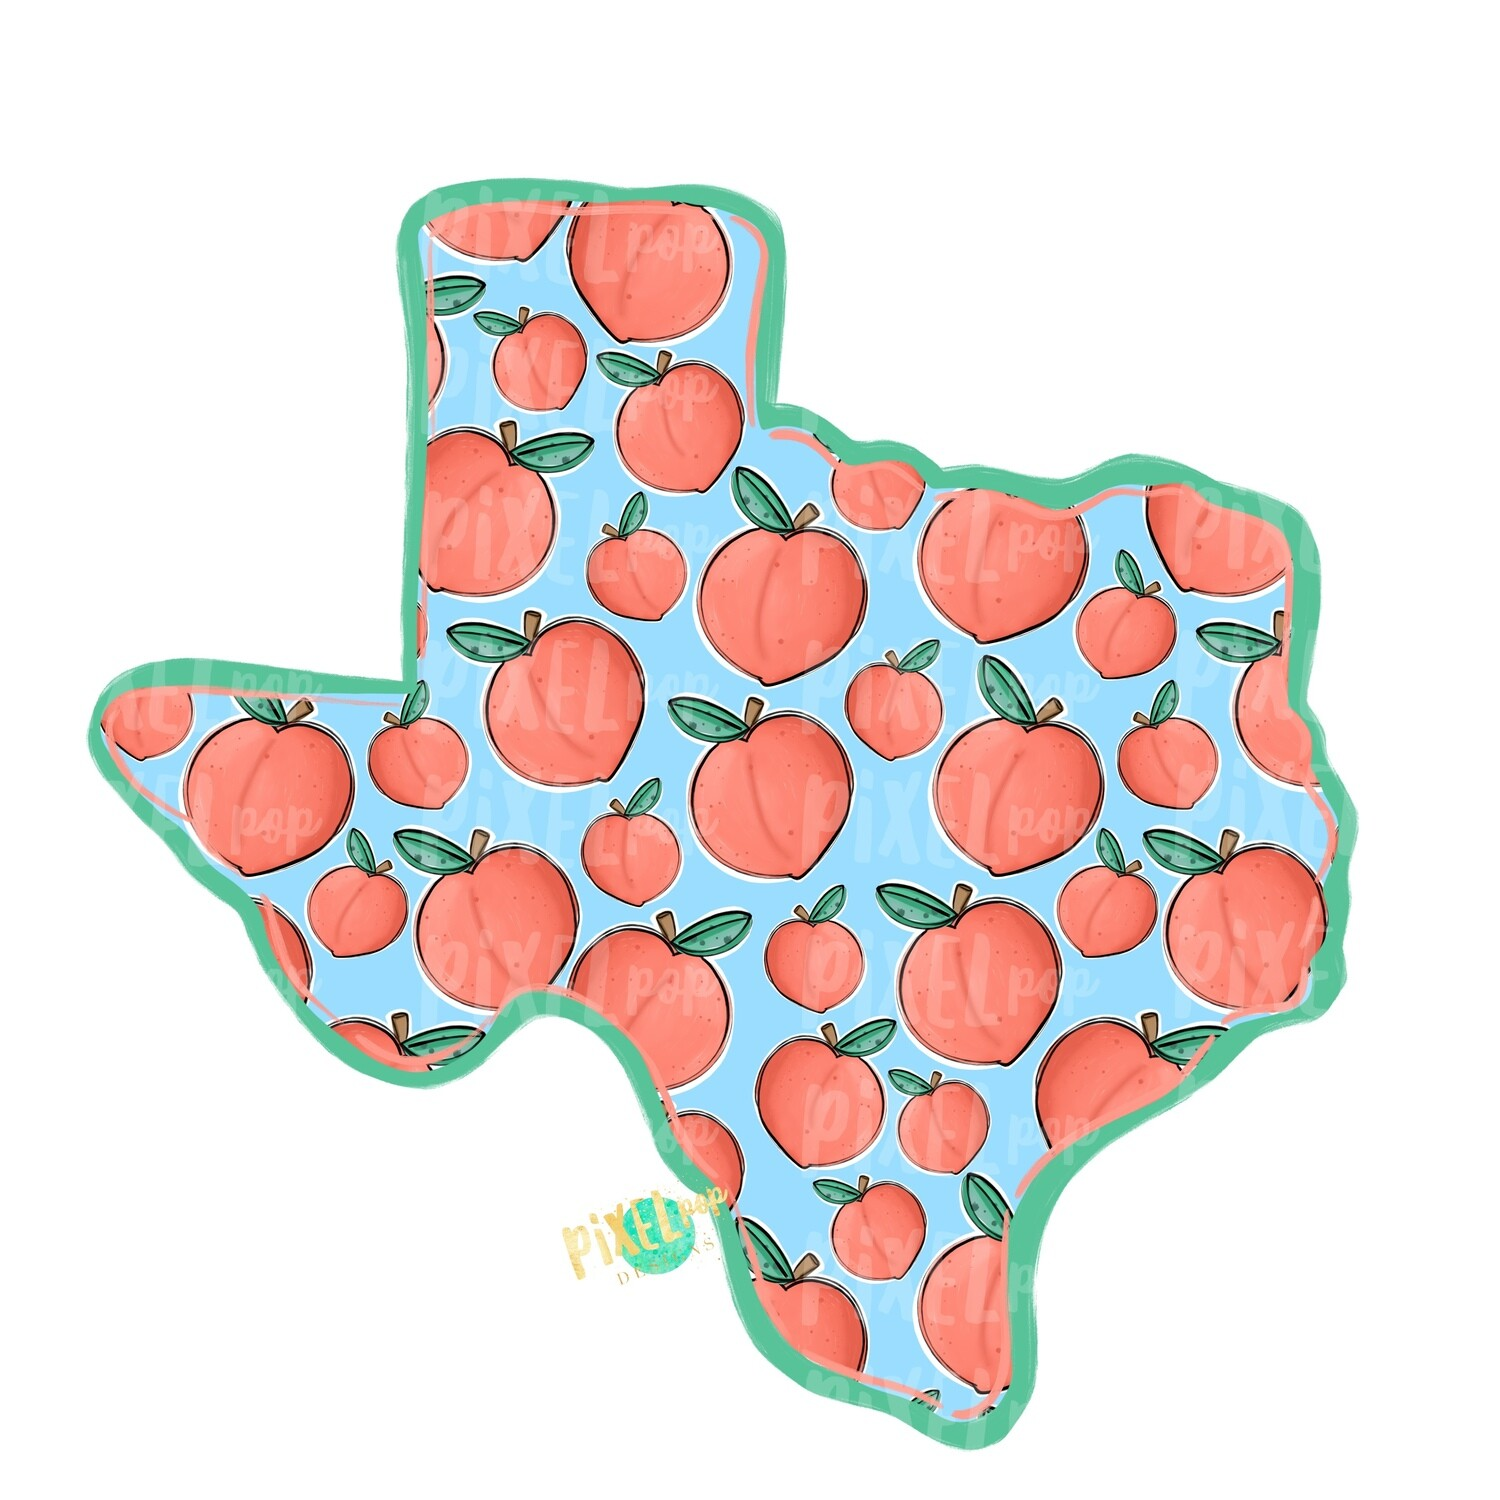 State of Texas Shape Peaches PNG | Texas | Home State | Sublimation Design | Heat Transfer | Digital | Peaches Background